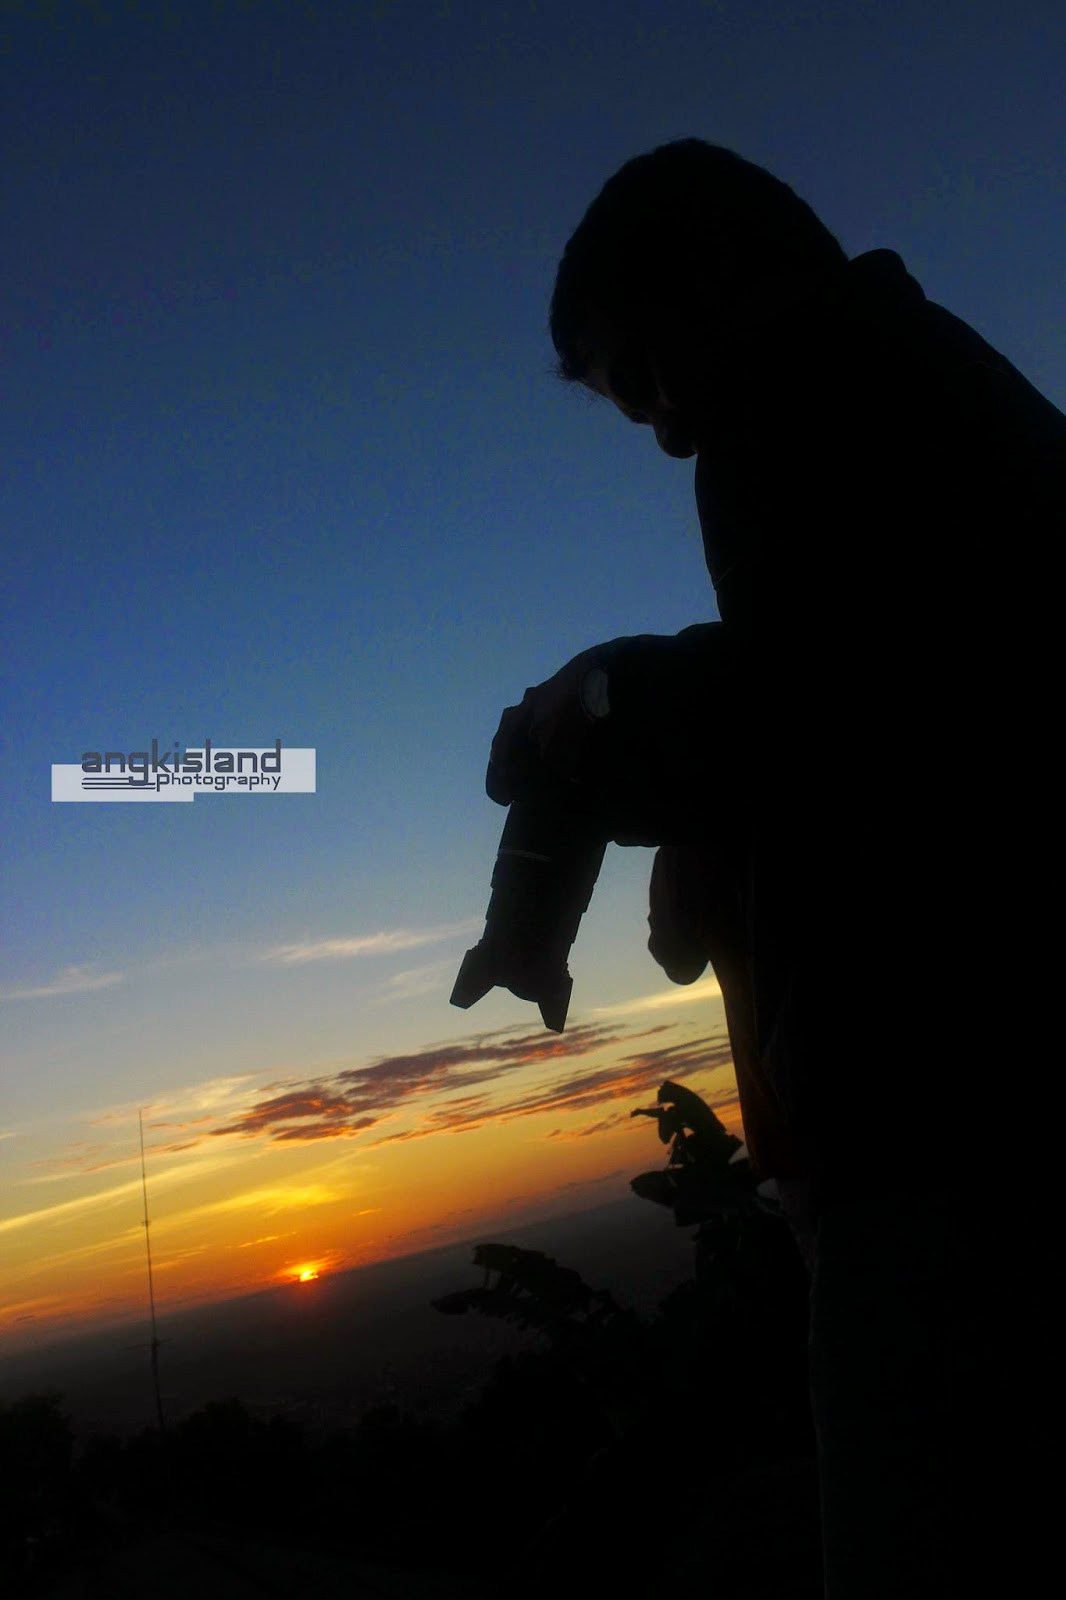 sunset time at jogja